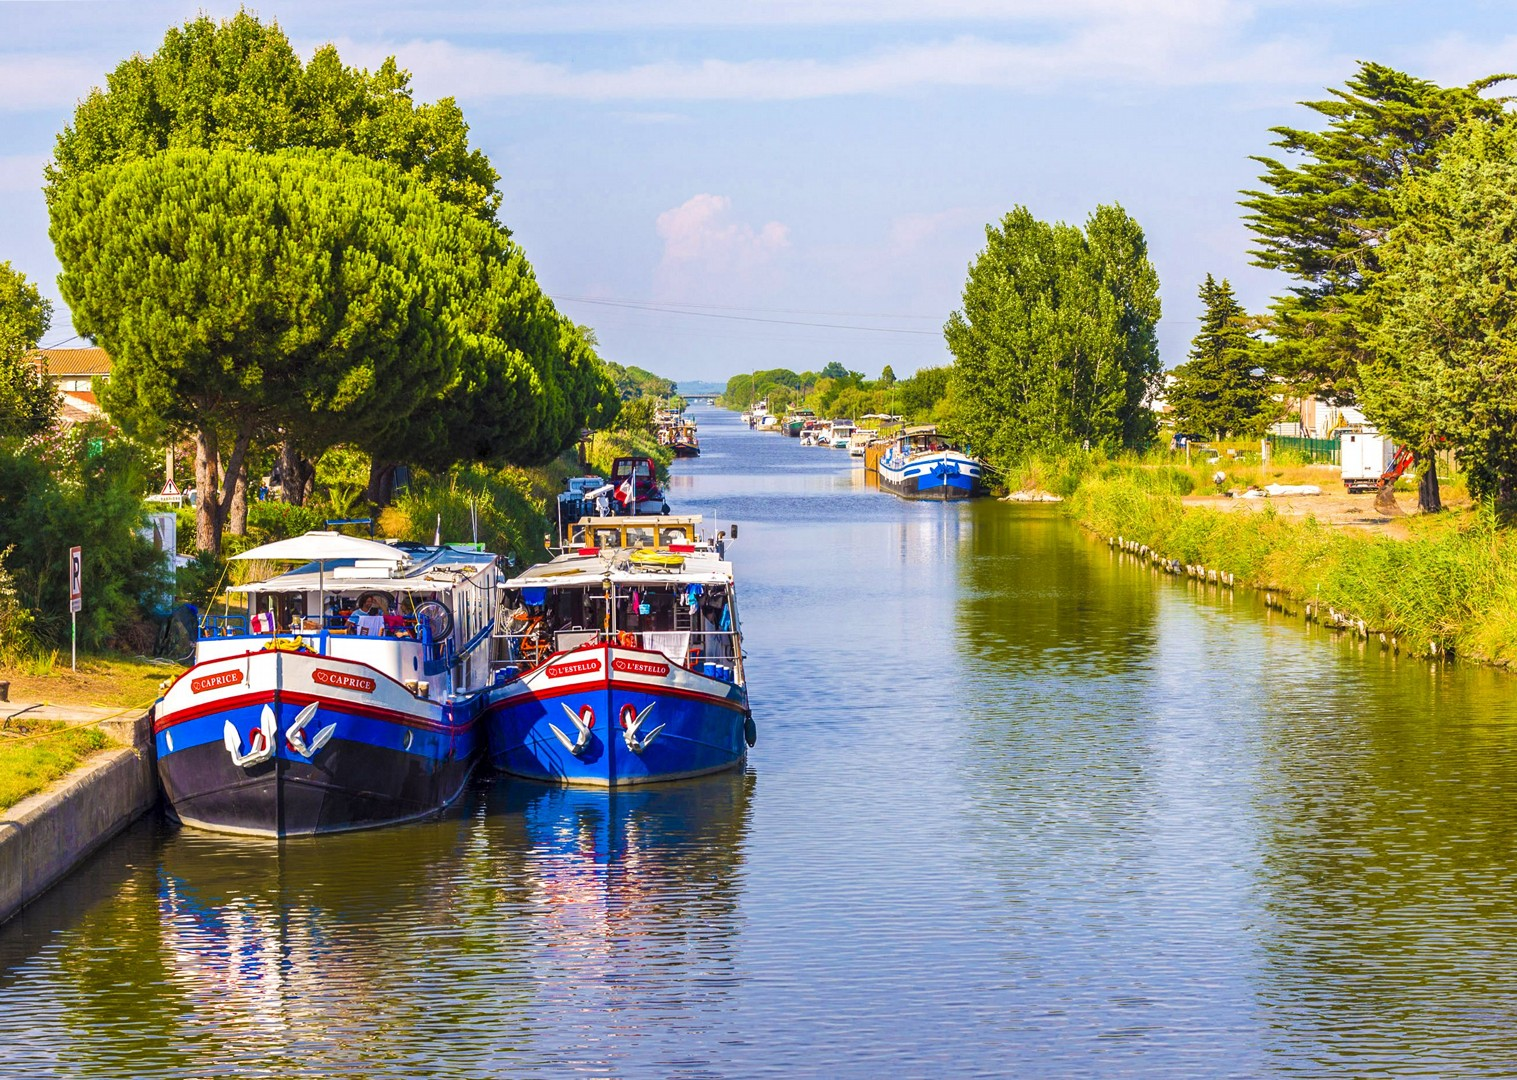 provence-aigues-mortes-to-avignon-bike-and-boat-cycling-tour.jpg - France - Provence - Aigues-Mortes to Avignon - Bike and Barge Holiday - Leisure Cycling